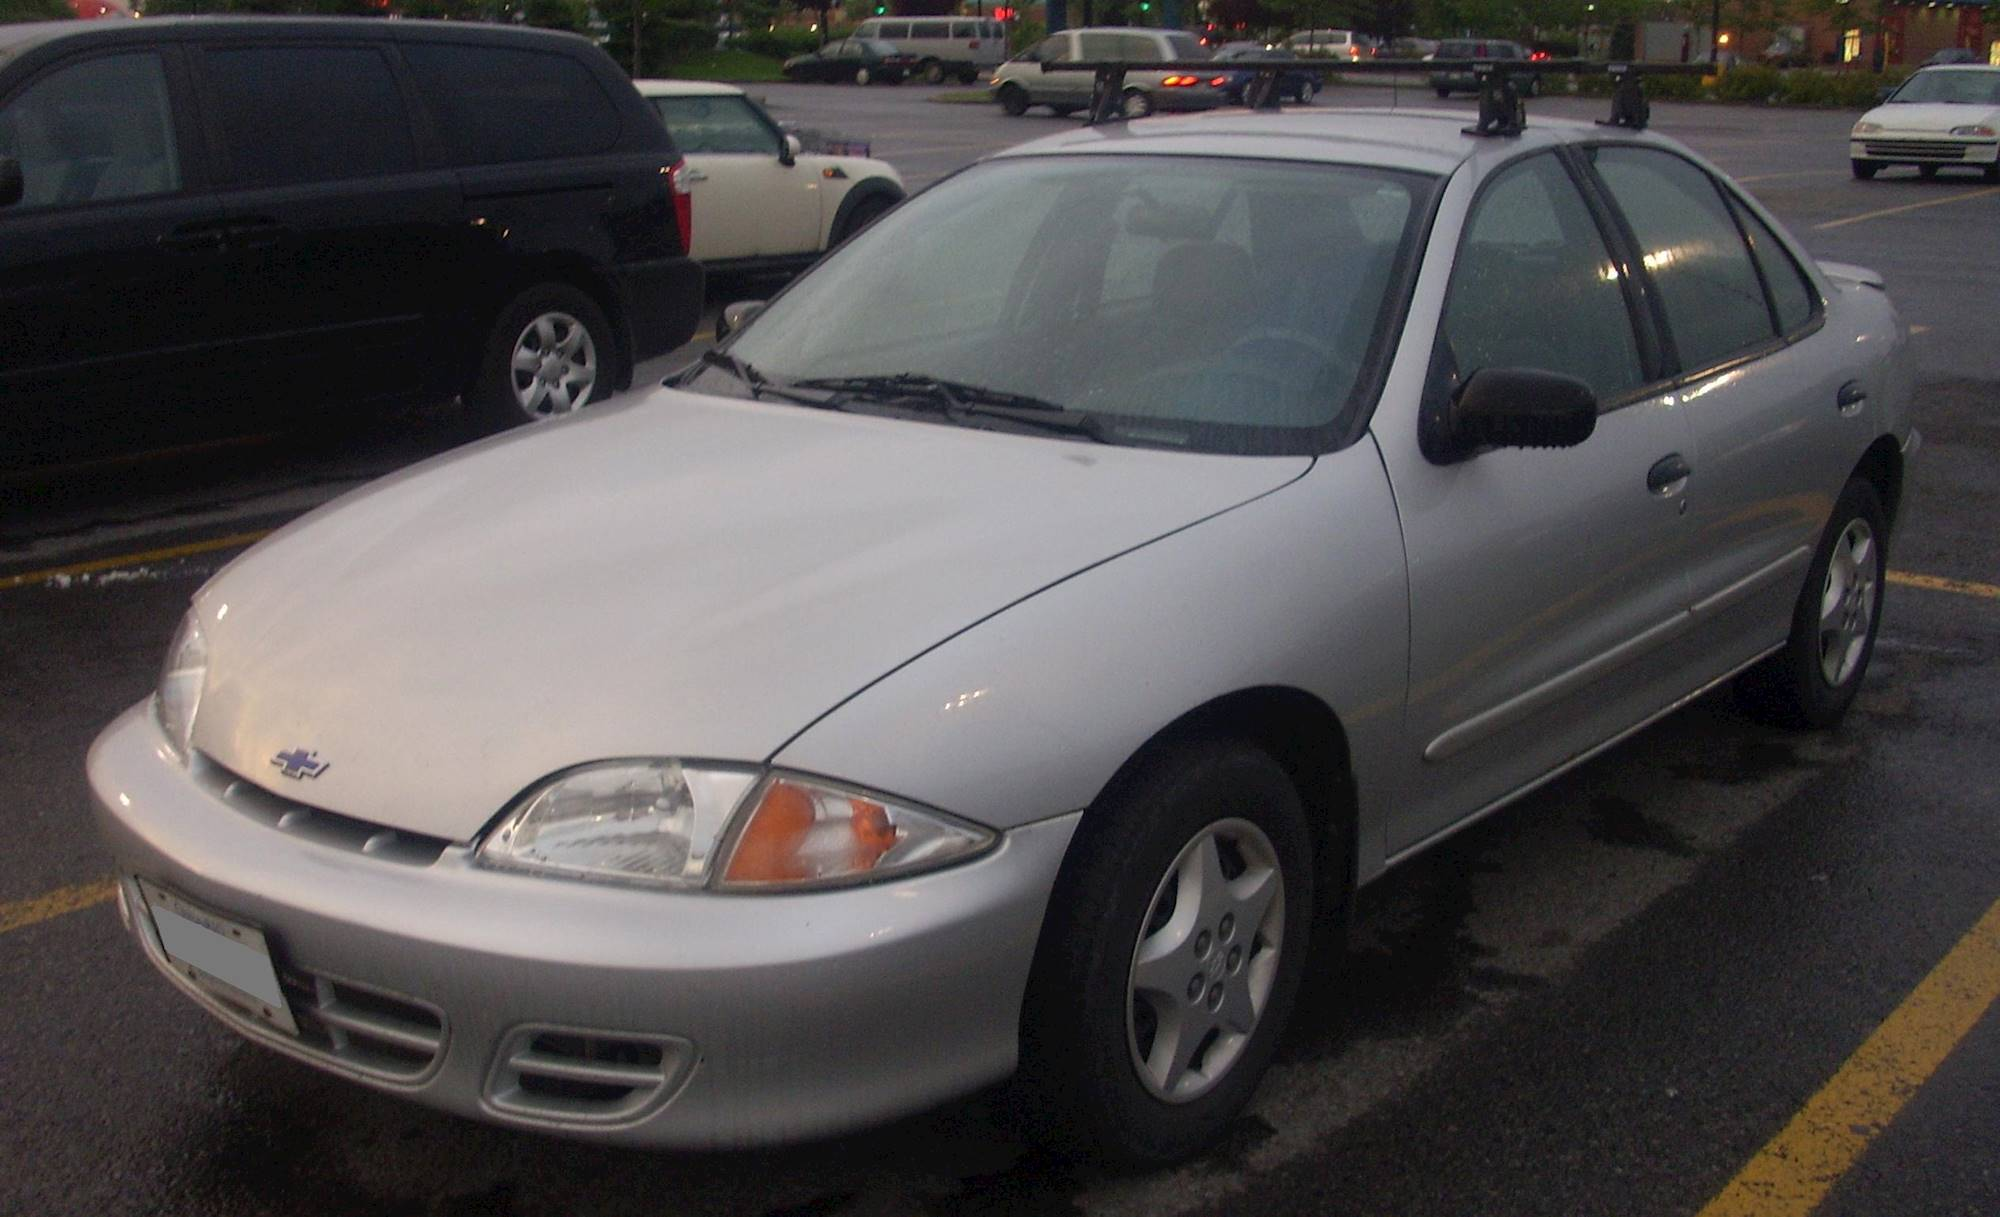 2002 chevrolet cavalier base sedan 2 2l manual 2002 chevrolet cavalier base sedan 2